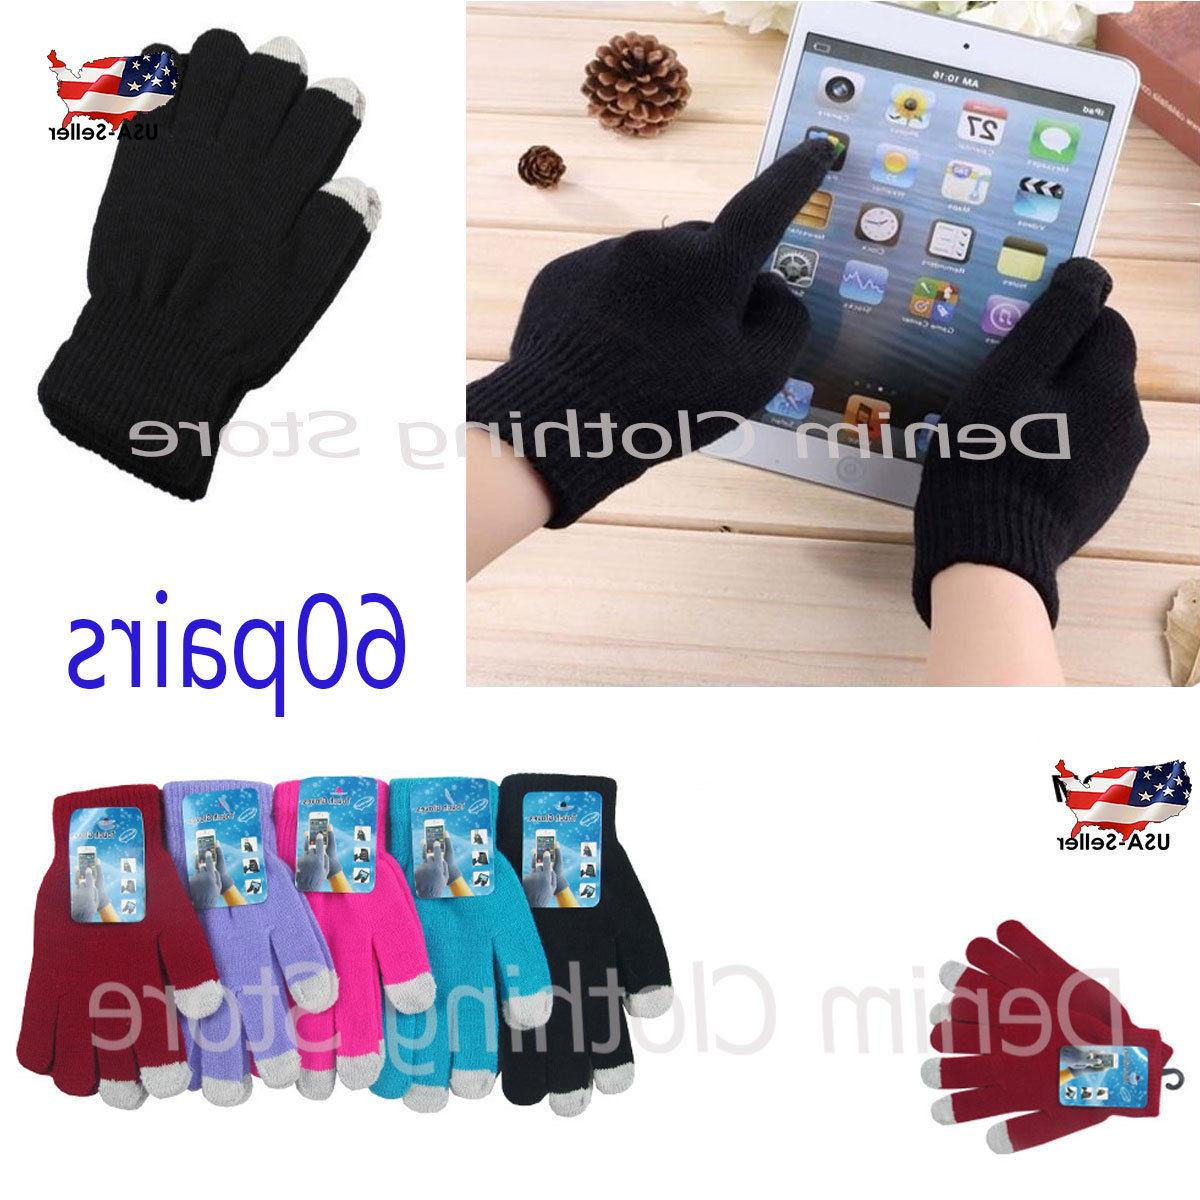 60pairs Women Magic Winter Gloves Screen Smart Wholesale